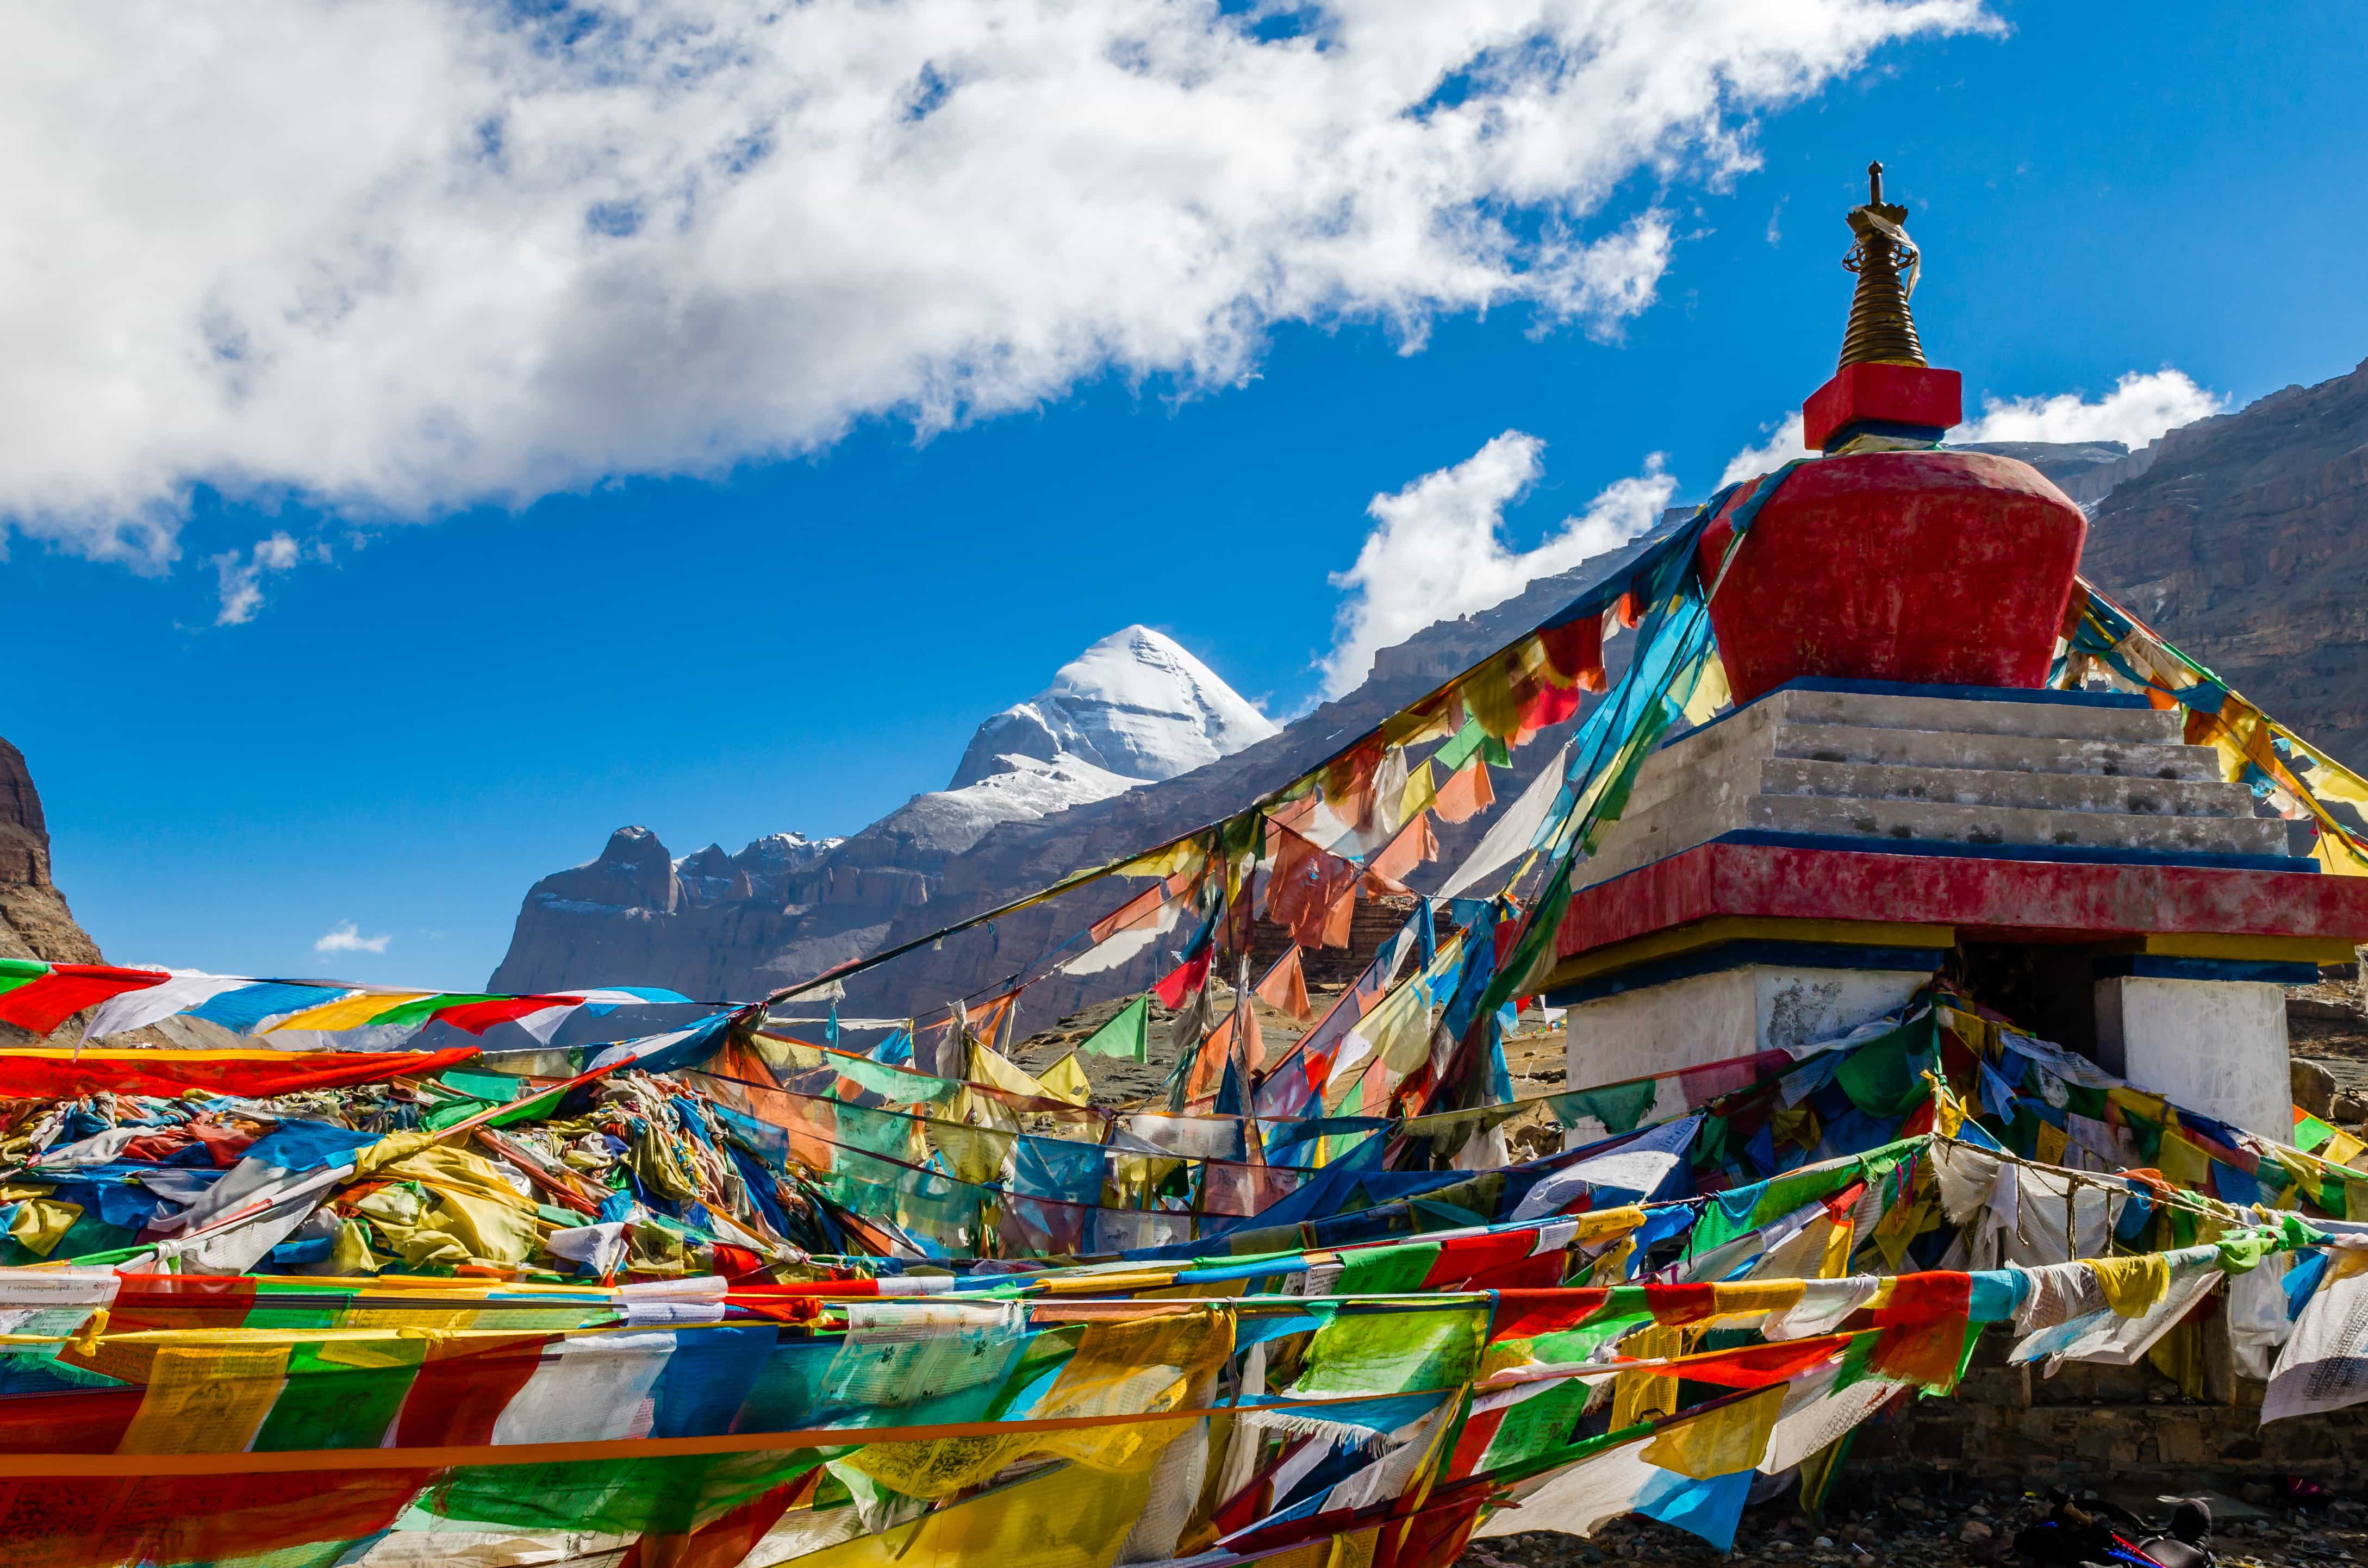 South face of Mount Kailash and stupa in Tibet